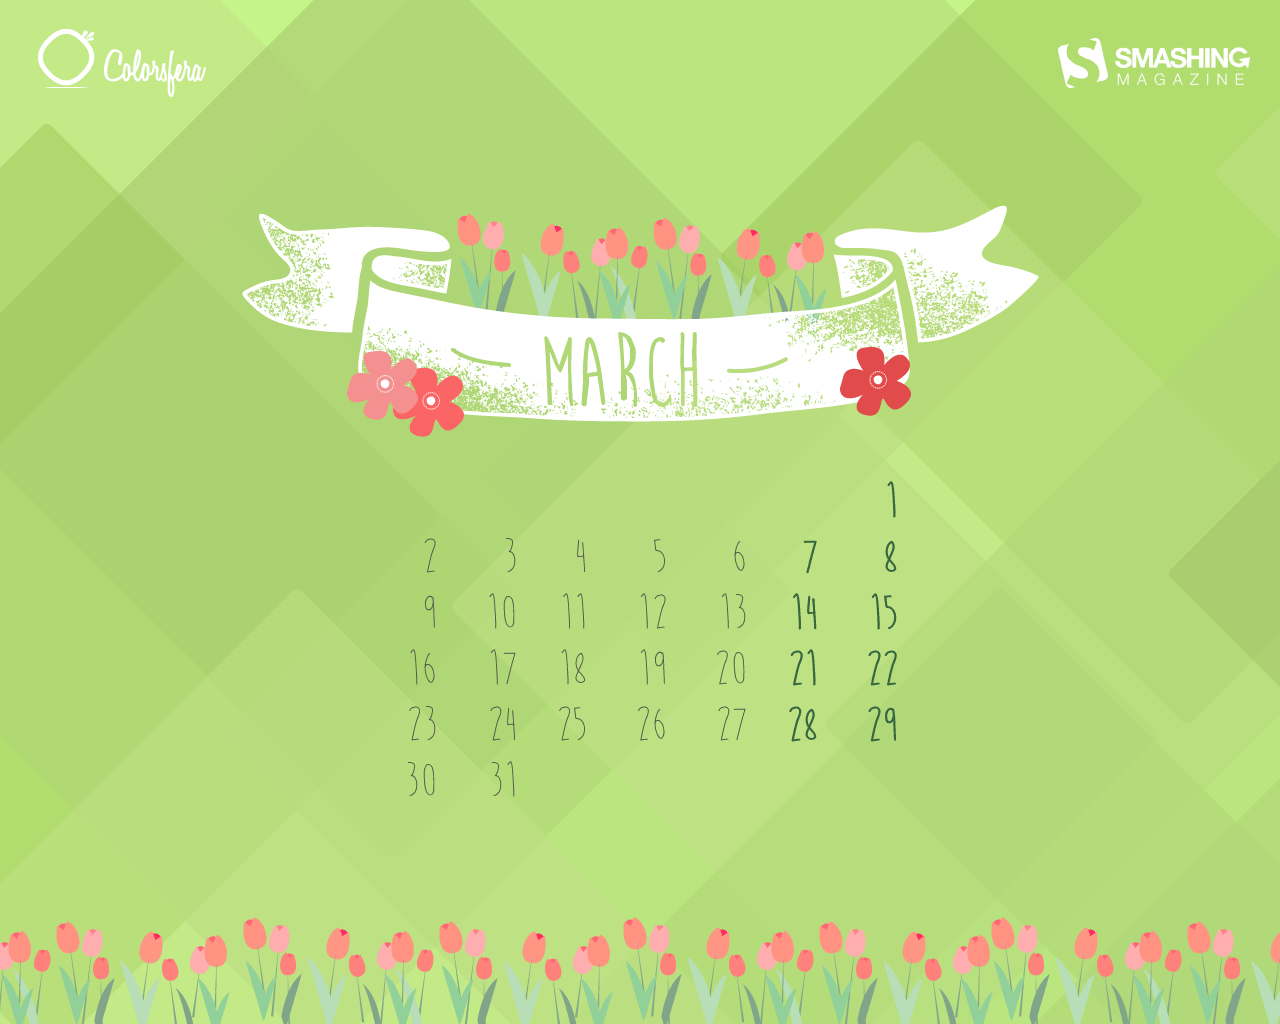 Desktop Wallpaper Calendars March 2015 Smashing Magazine 1280x1024